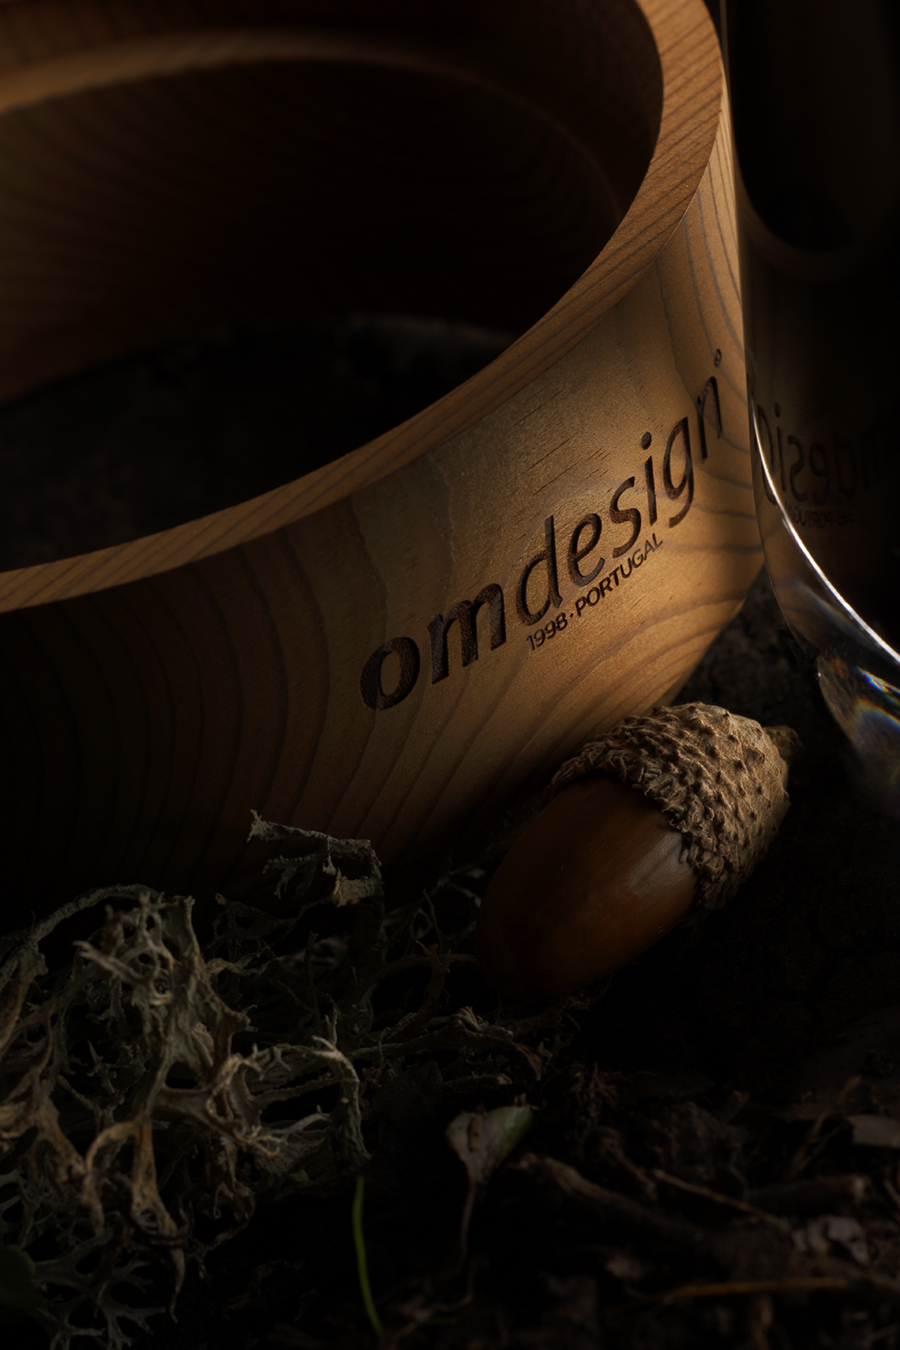 Sealed Grow Room Design: Omdesign 2016 Packaging (Concept) On Packaging Of The